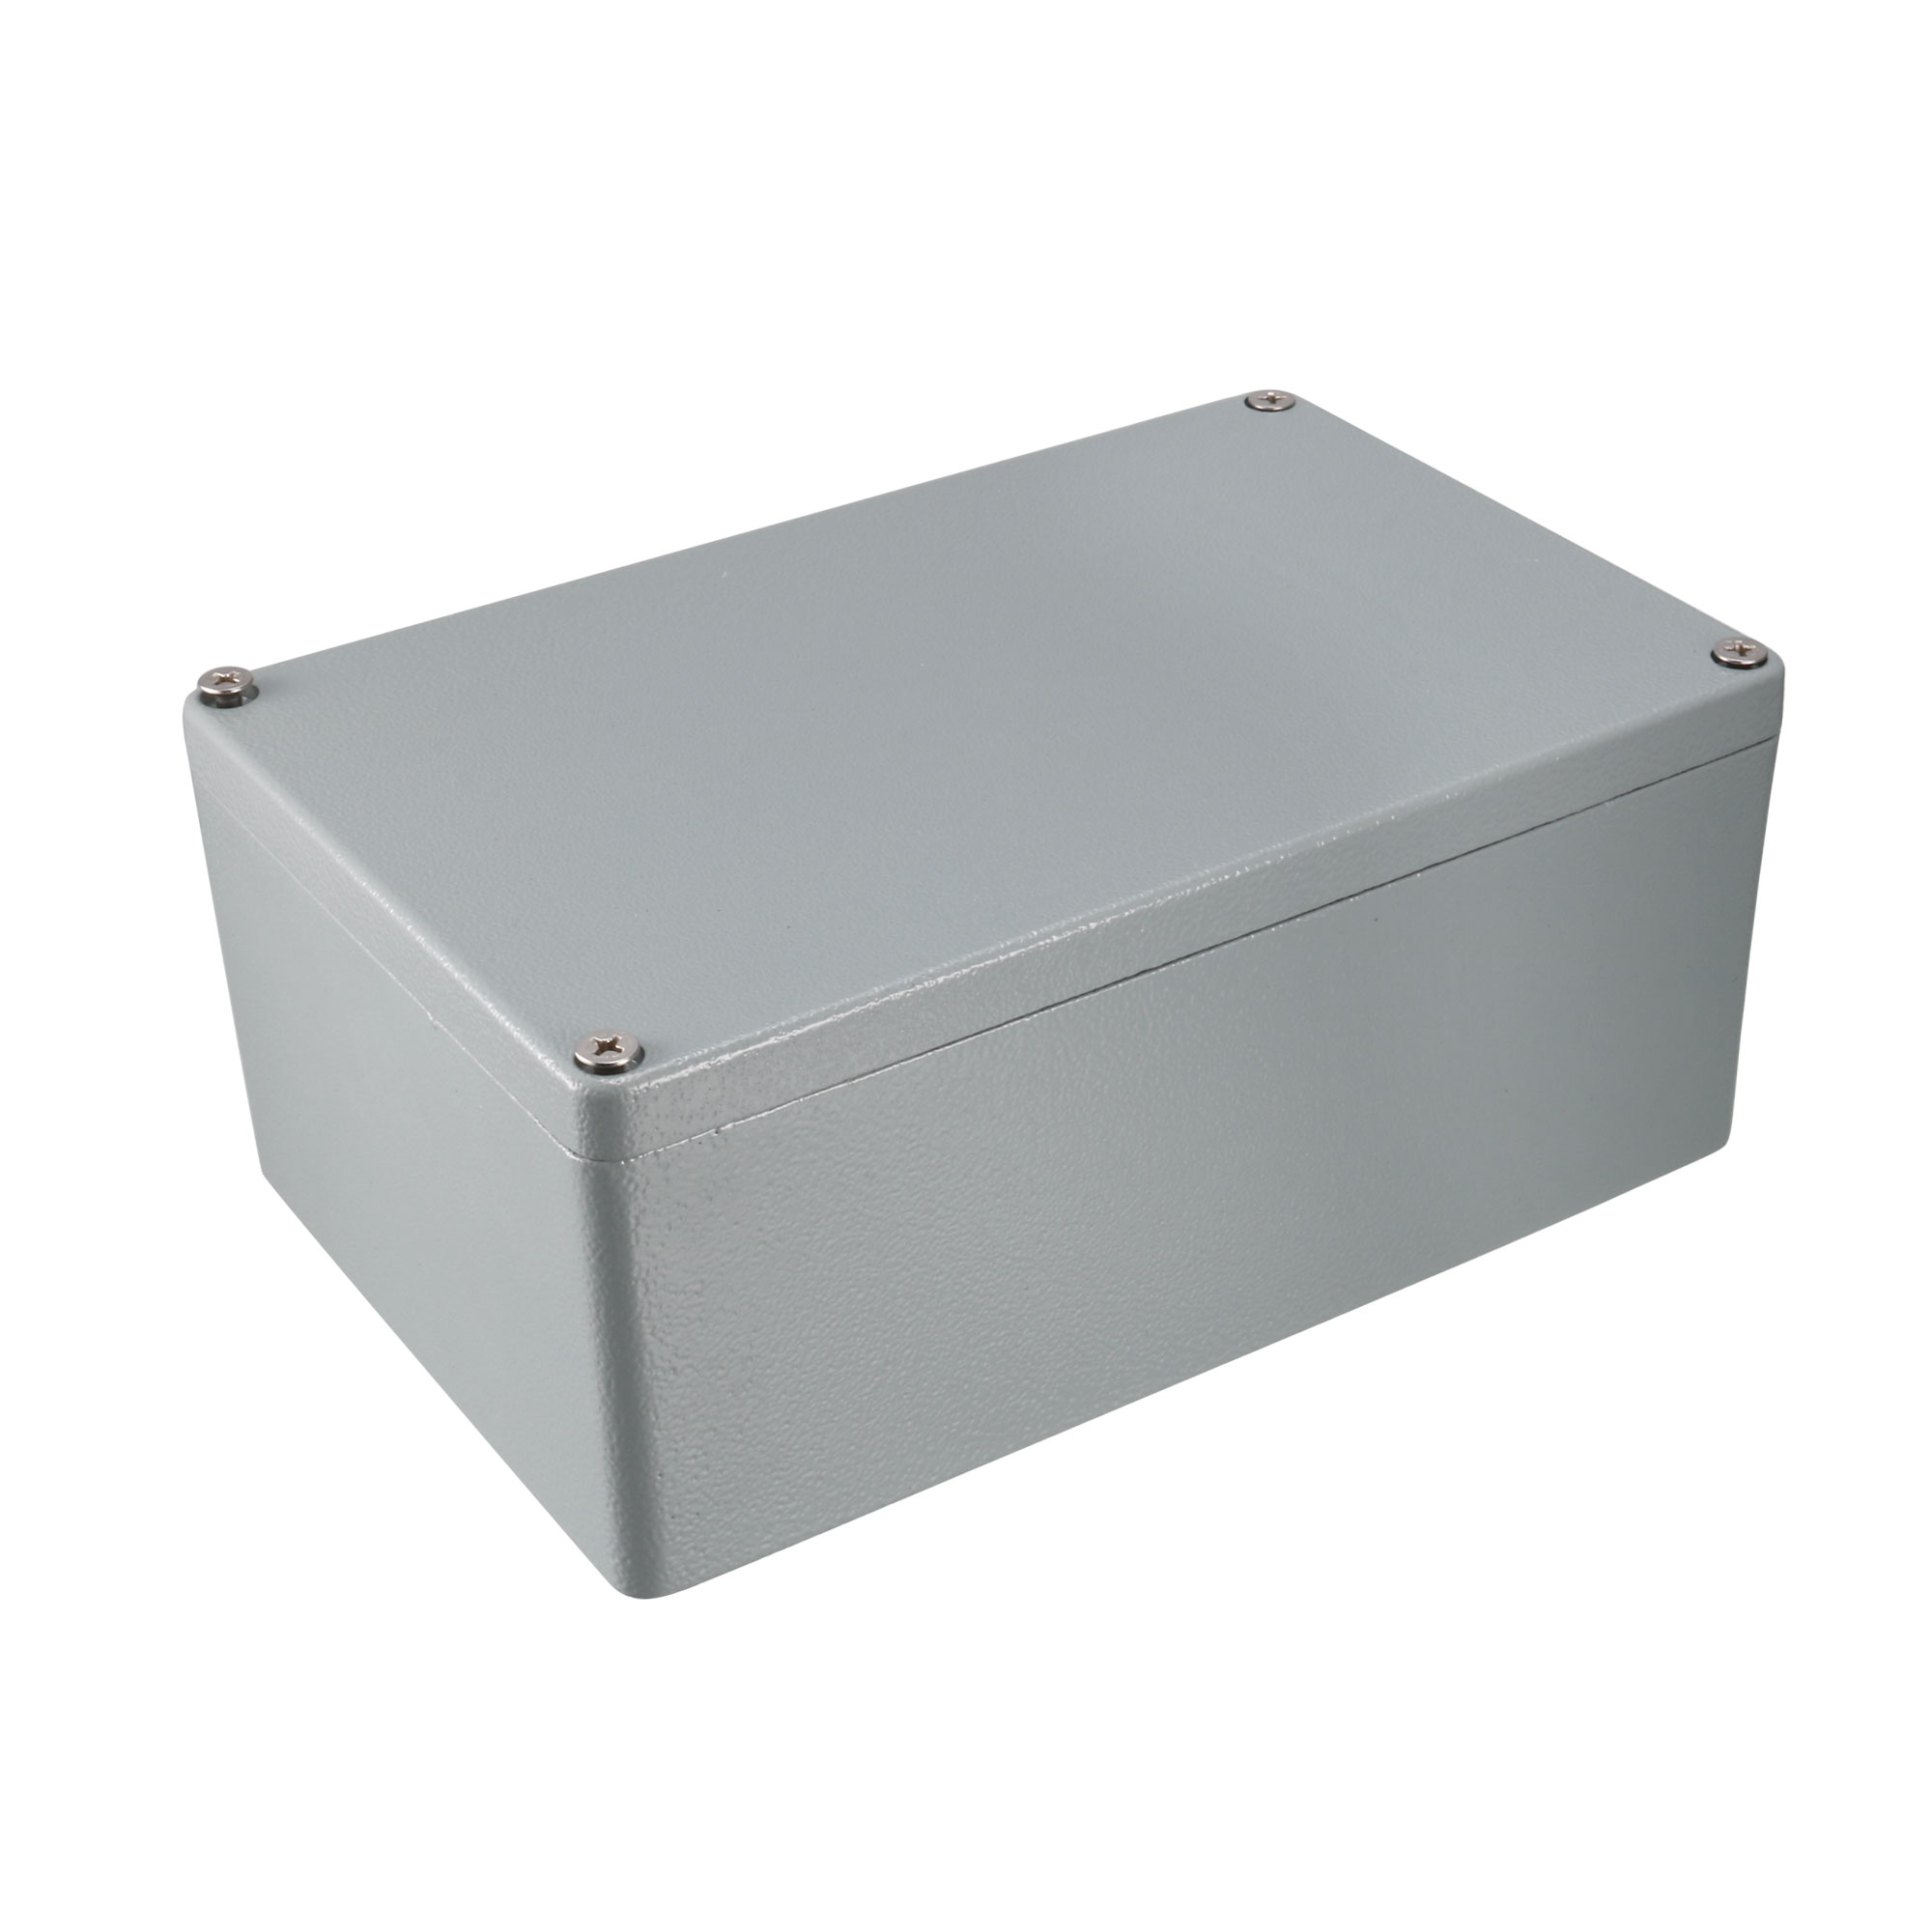 "7.4""x4.7""x3""(188mmx120mmx78mm) Aluminum Junction Box Universal Electric Project Enclosure w Two Horns"